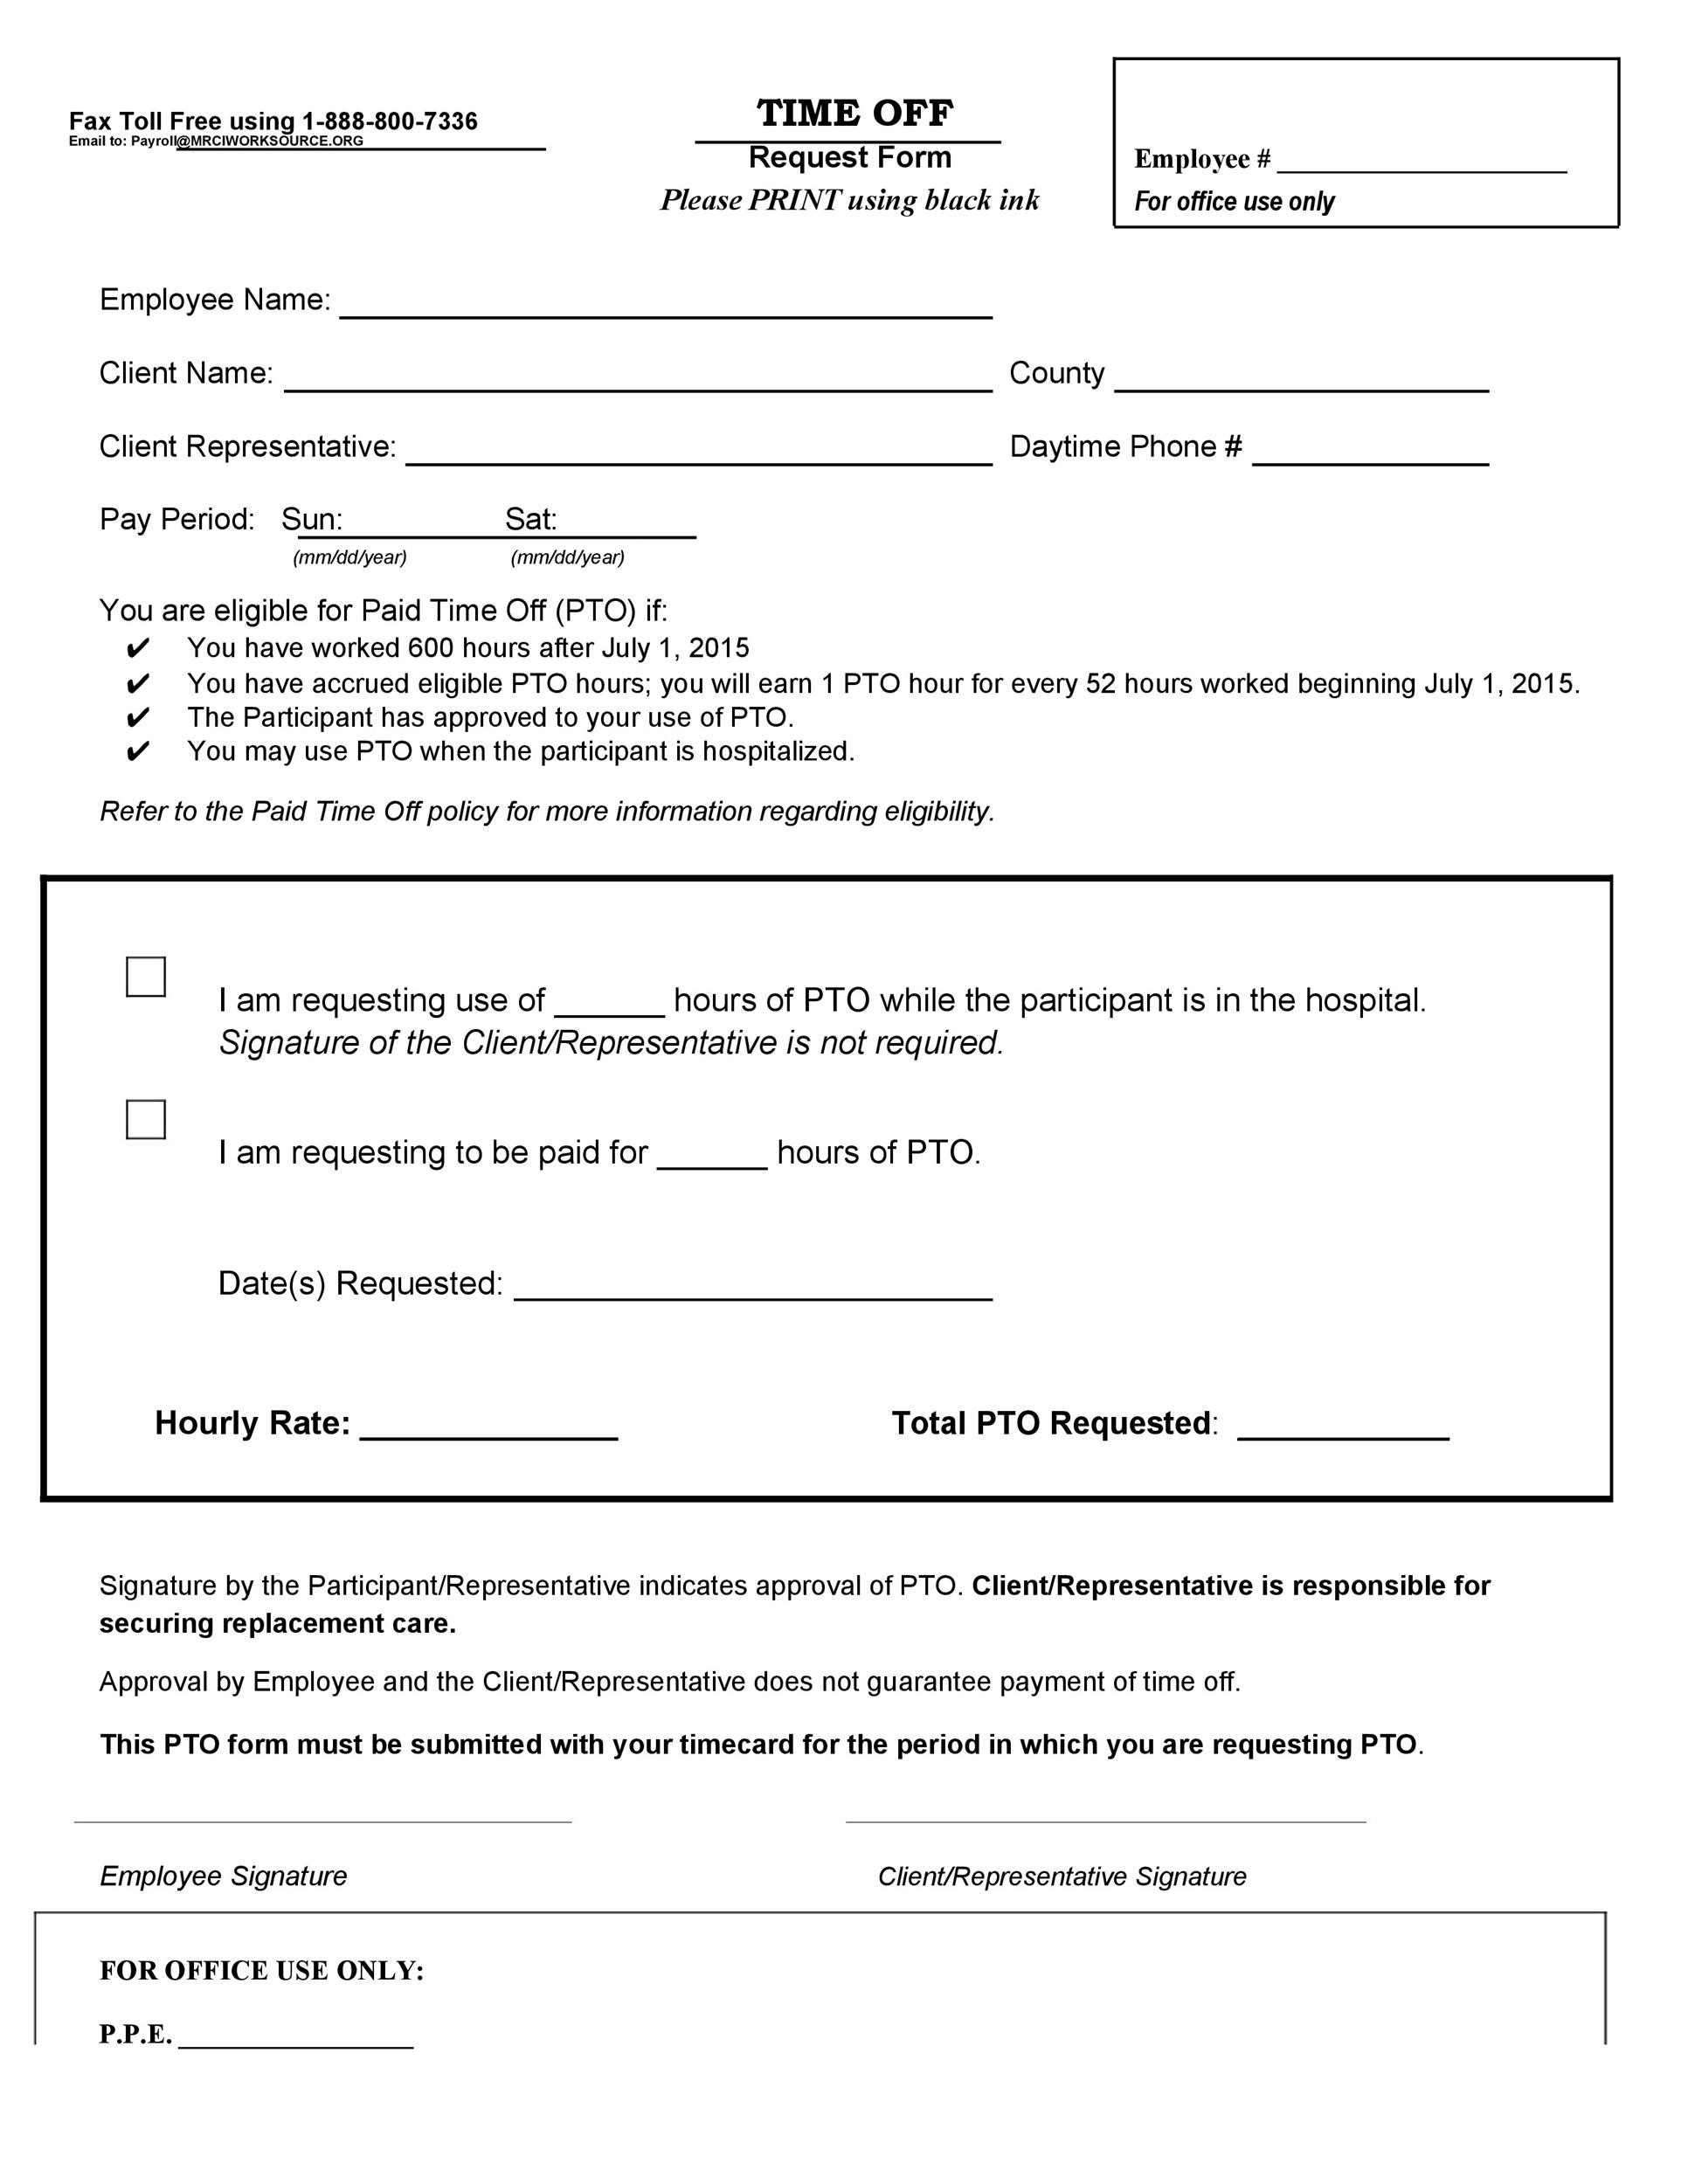 Simplicity image throughout free printable time off request forms